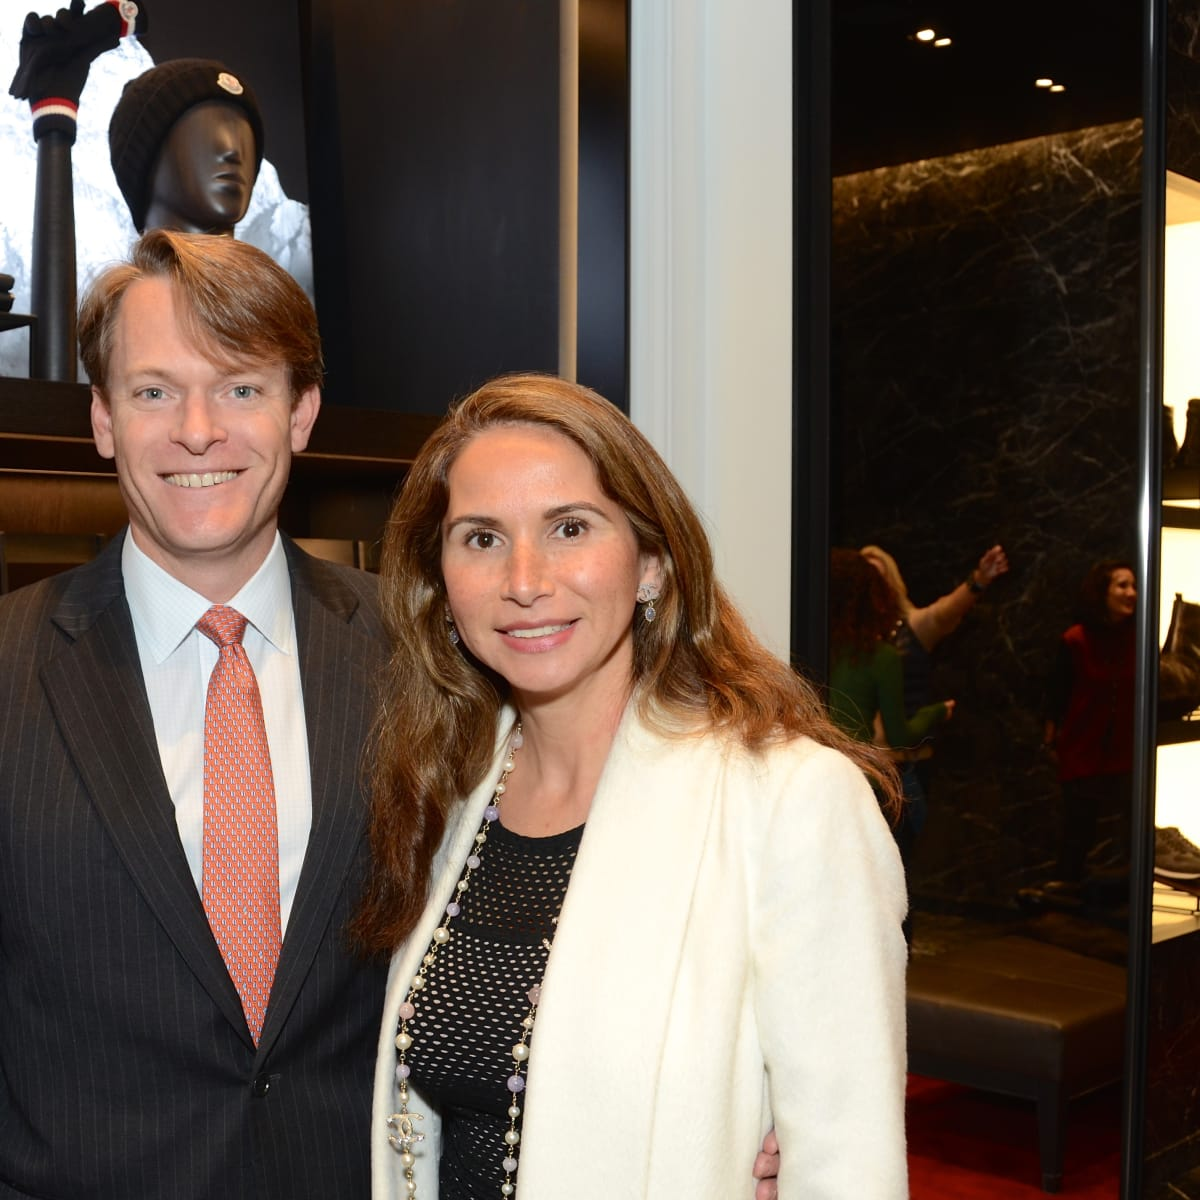 News, Moncler opening, Dec. 2015, Emerson and Cecilia Hankamer